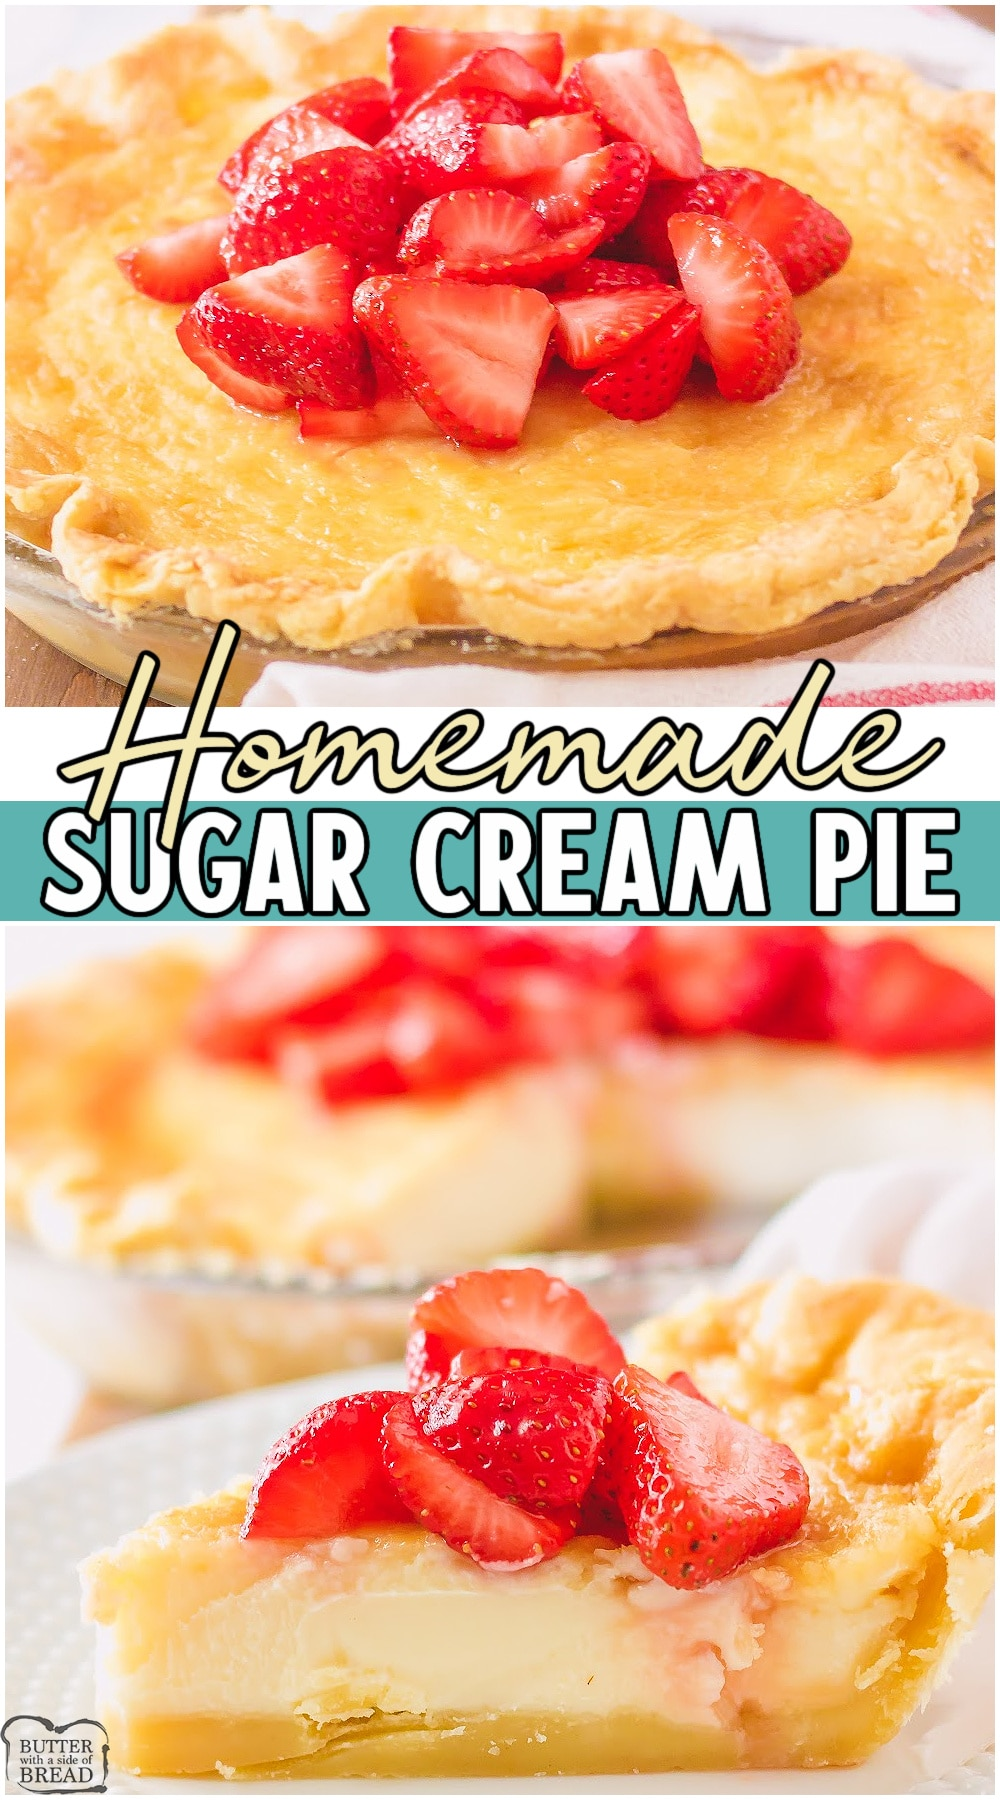 Sugar cream pie is a delicious custard pie made with butter, brown sugar, heavy cream and vanilla. Make this delicious custard pie from scratch today and watch everyone rave! #pie #sugarcream #custard #vanilla #baking #easyrecipe from BUTTER WITH A SIDE OF BREAD